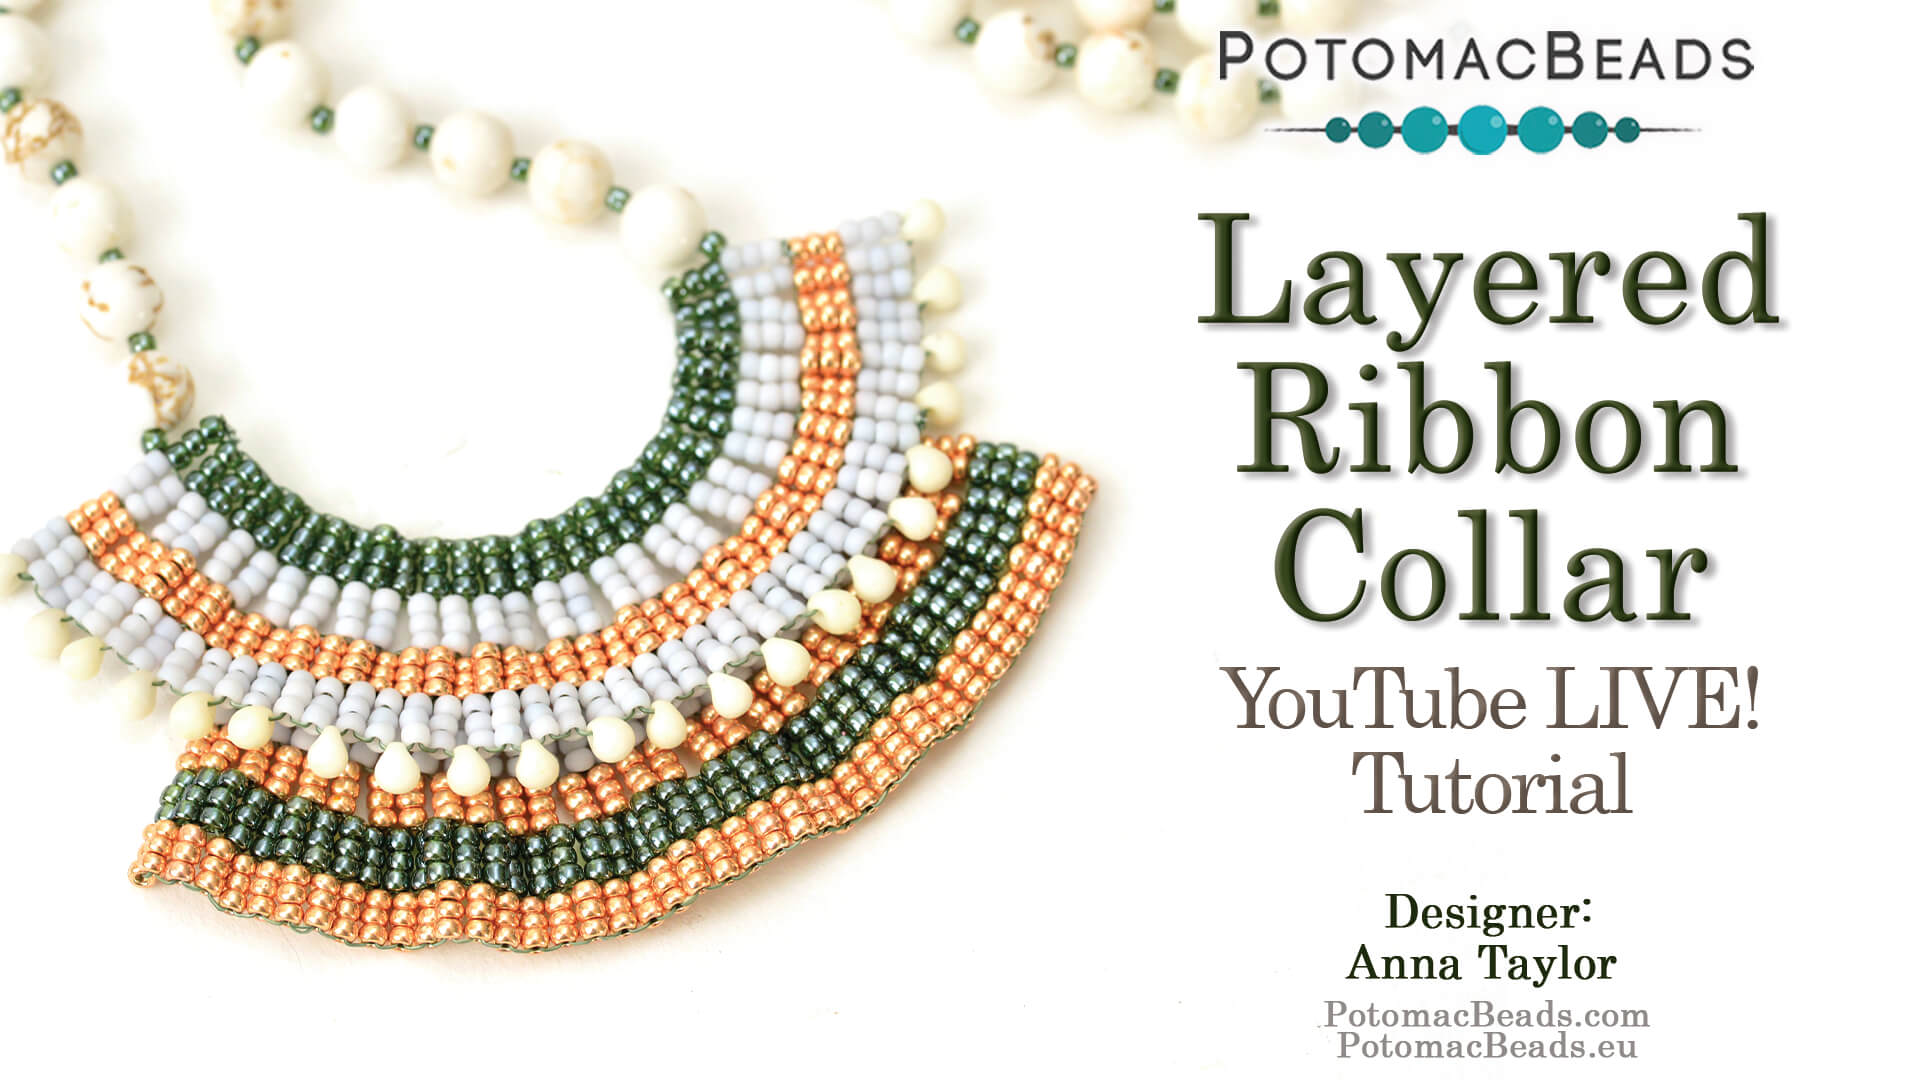 How to Bead / Videos Sorted by Beads / Gemstone Videos / Layered Ribbon Collar Tutorial